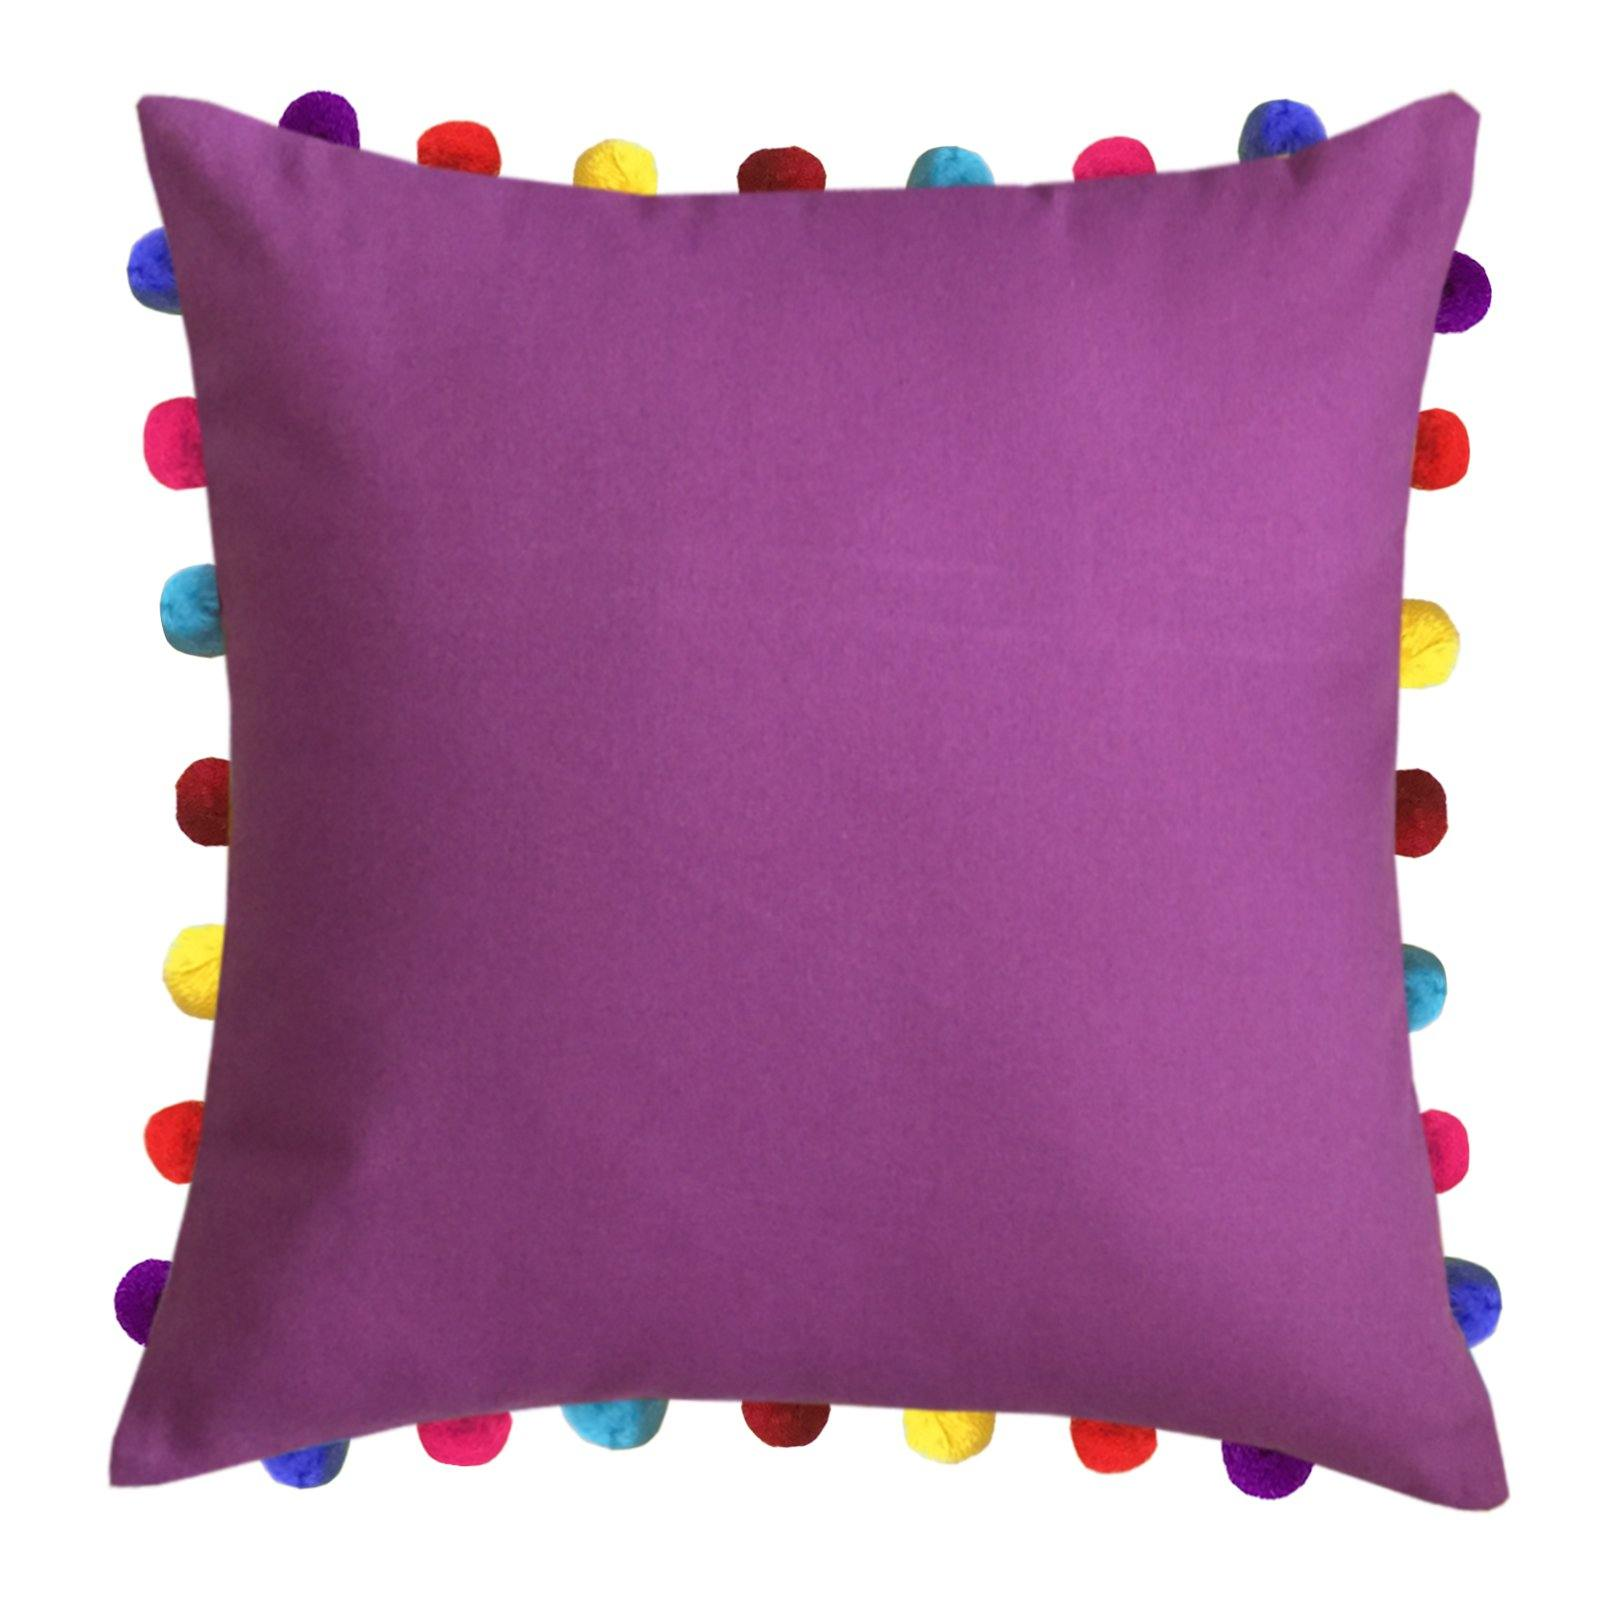 "Lushomes Bordeaux Cushion Cover with Colorful Pom Poms (Single pc, 20 x 20"") - Lushomes"